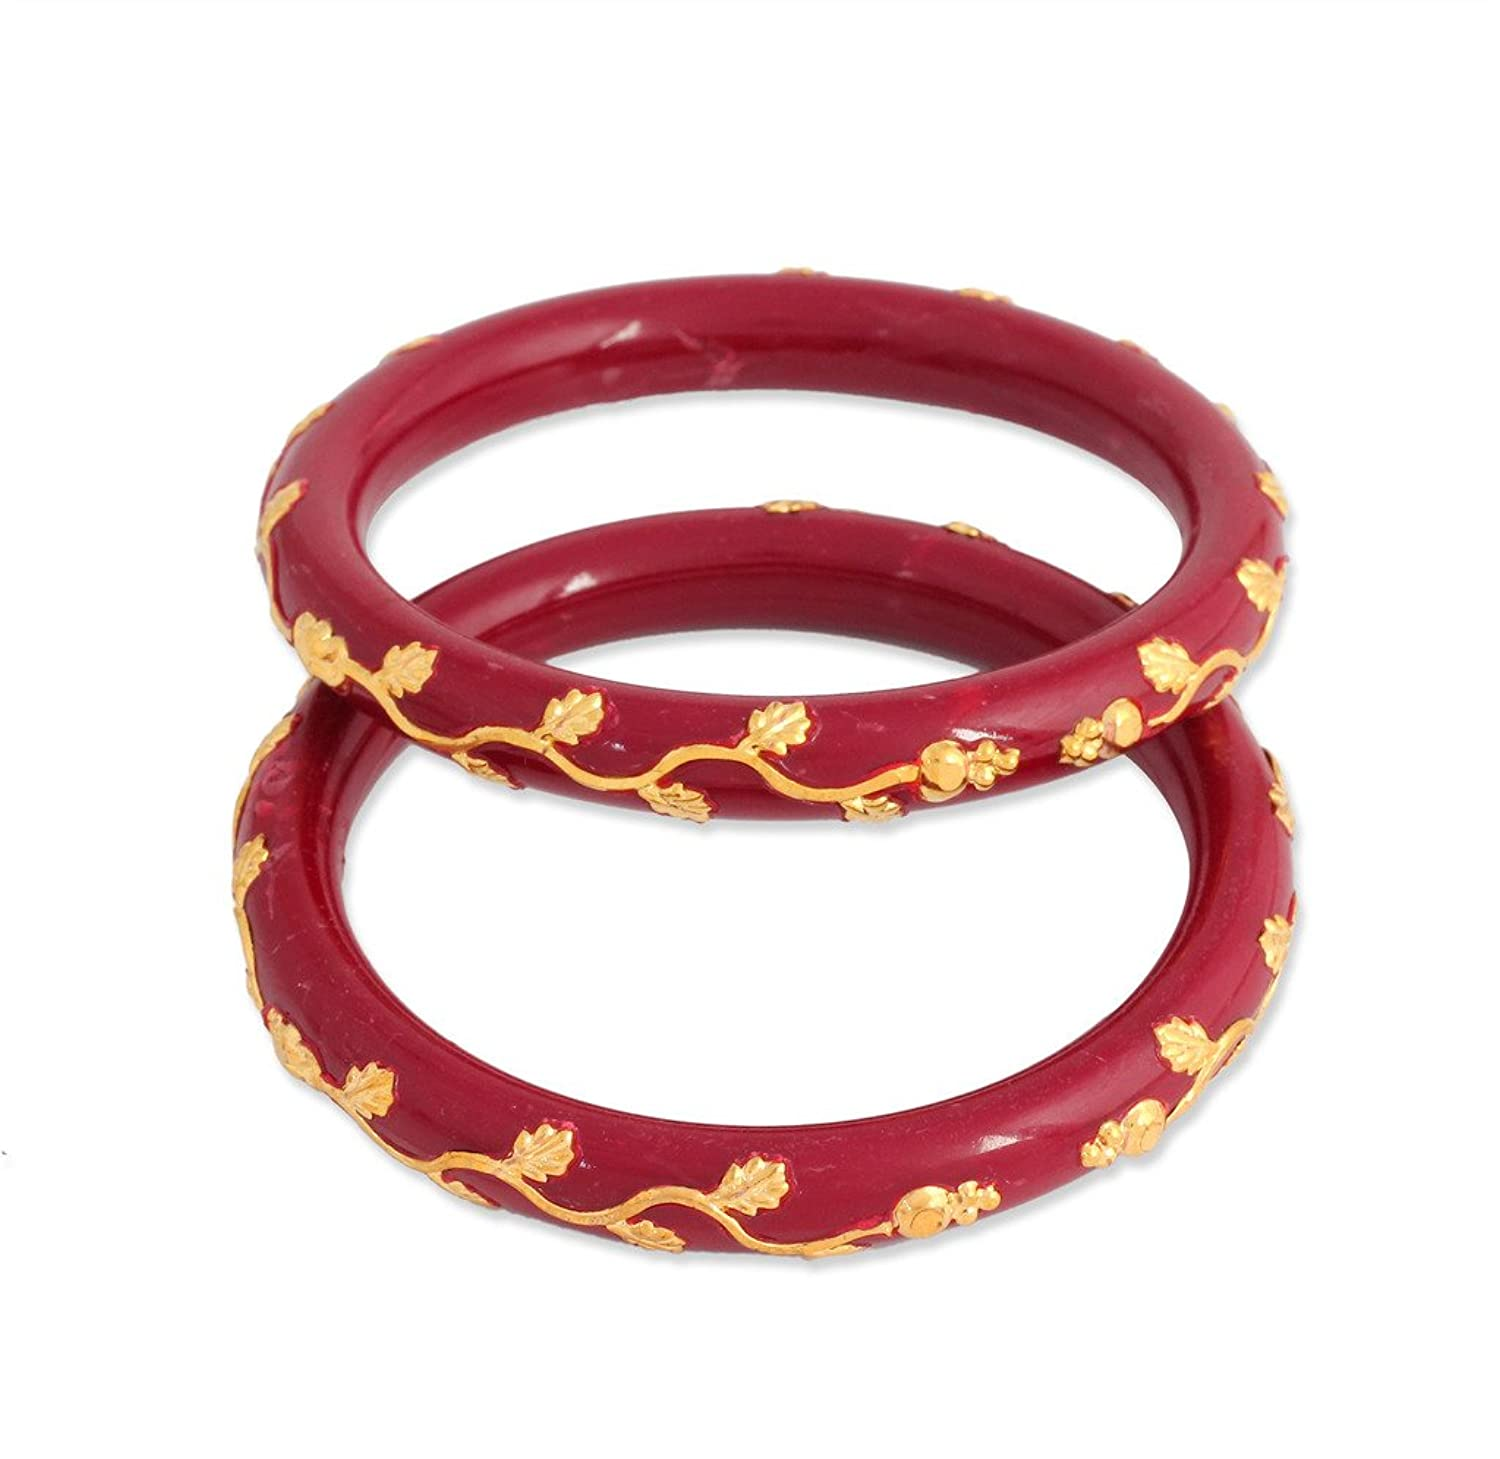 machines artisan acrylic ban ultra of to has company adroitly painted blend innovative quality modern in unique order product lac wooden crafted impex ishita bangles and